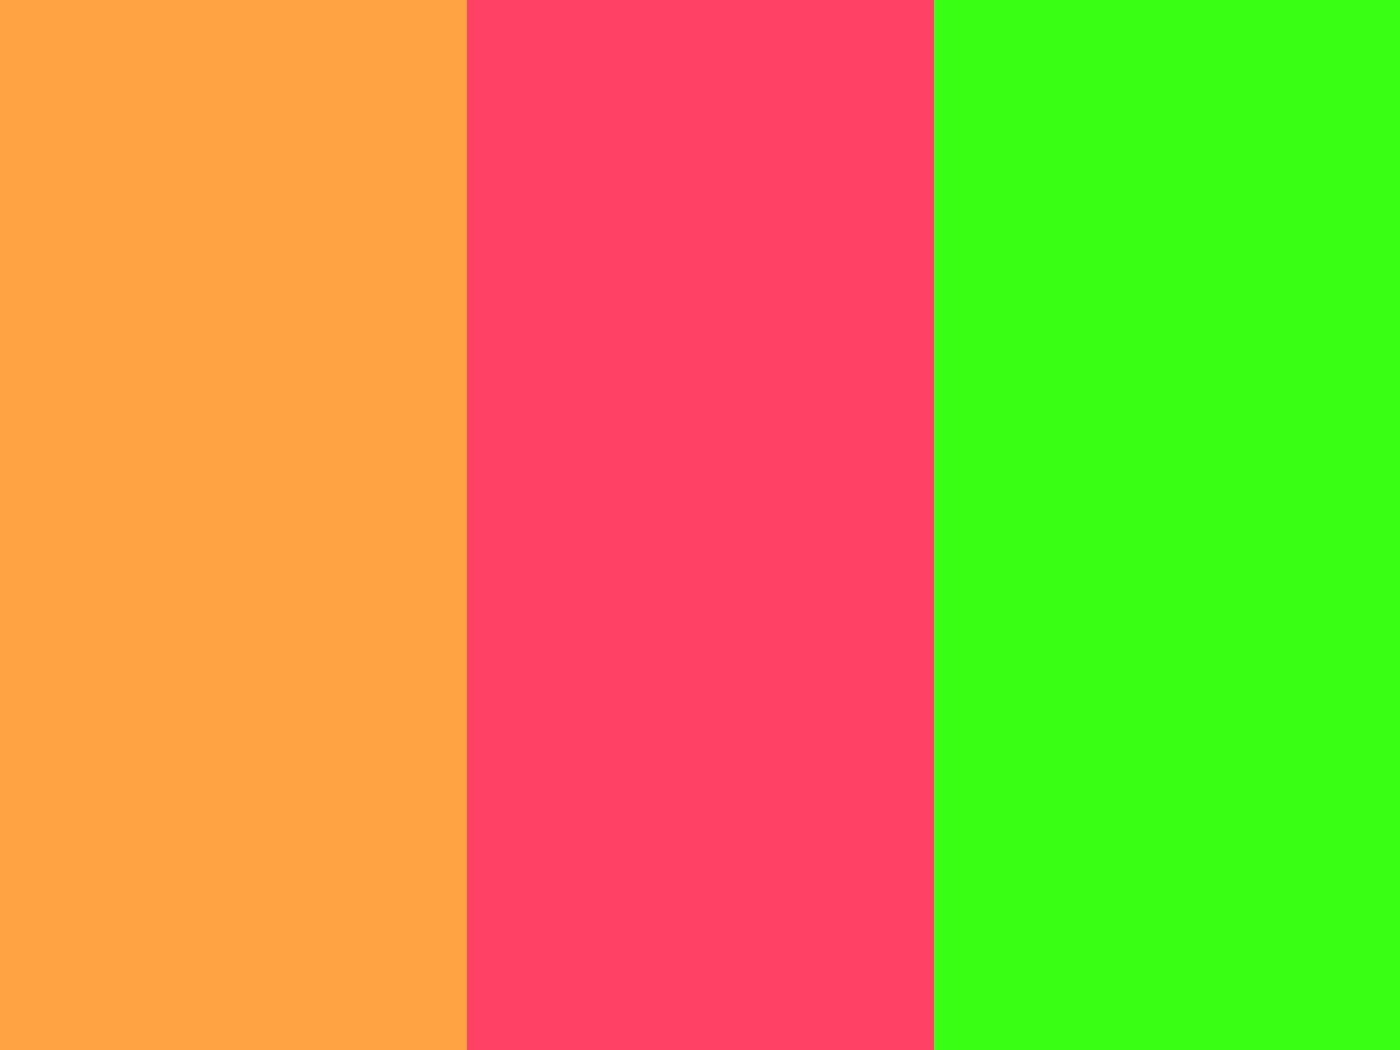 Solid Neon Colors Background Neon Green Solid Color 1400x1050